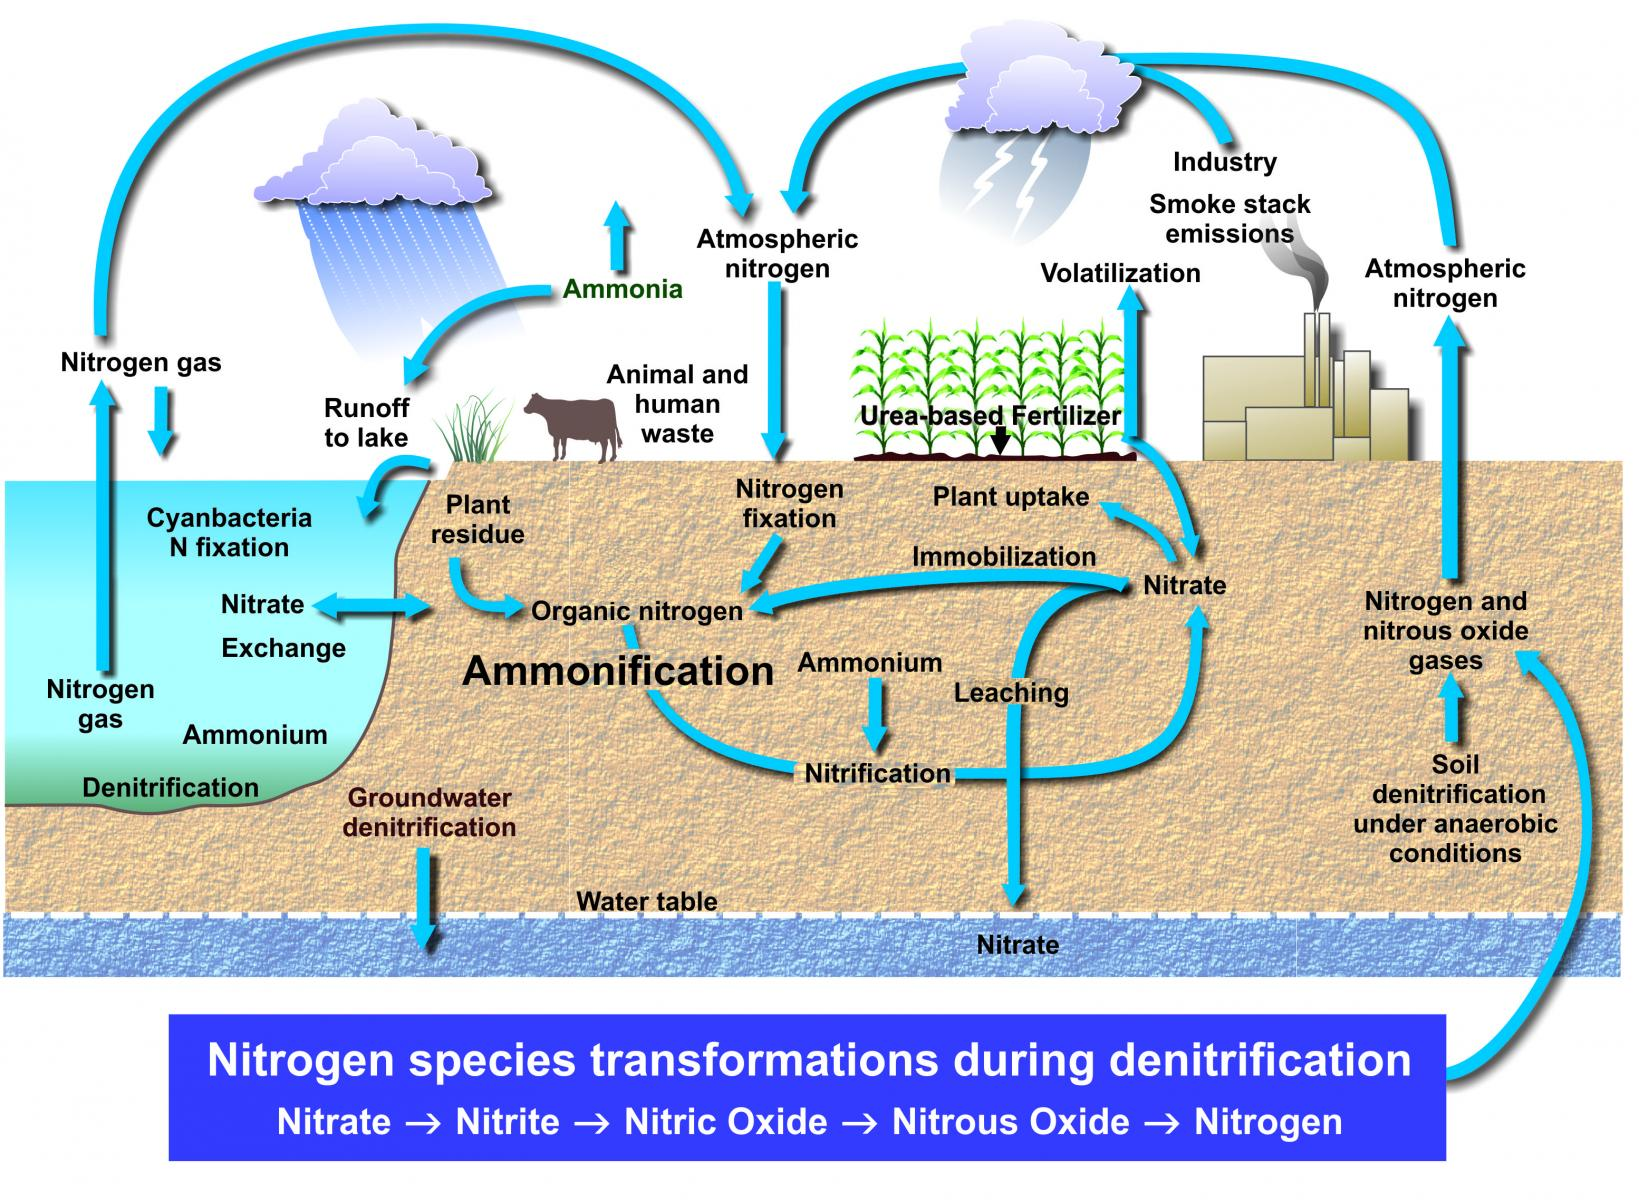 Generalized nitrogen cycle within water, soil and in the air.